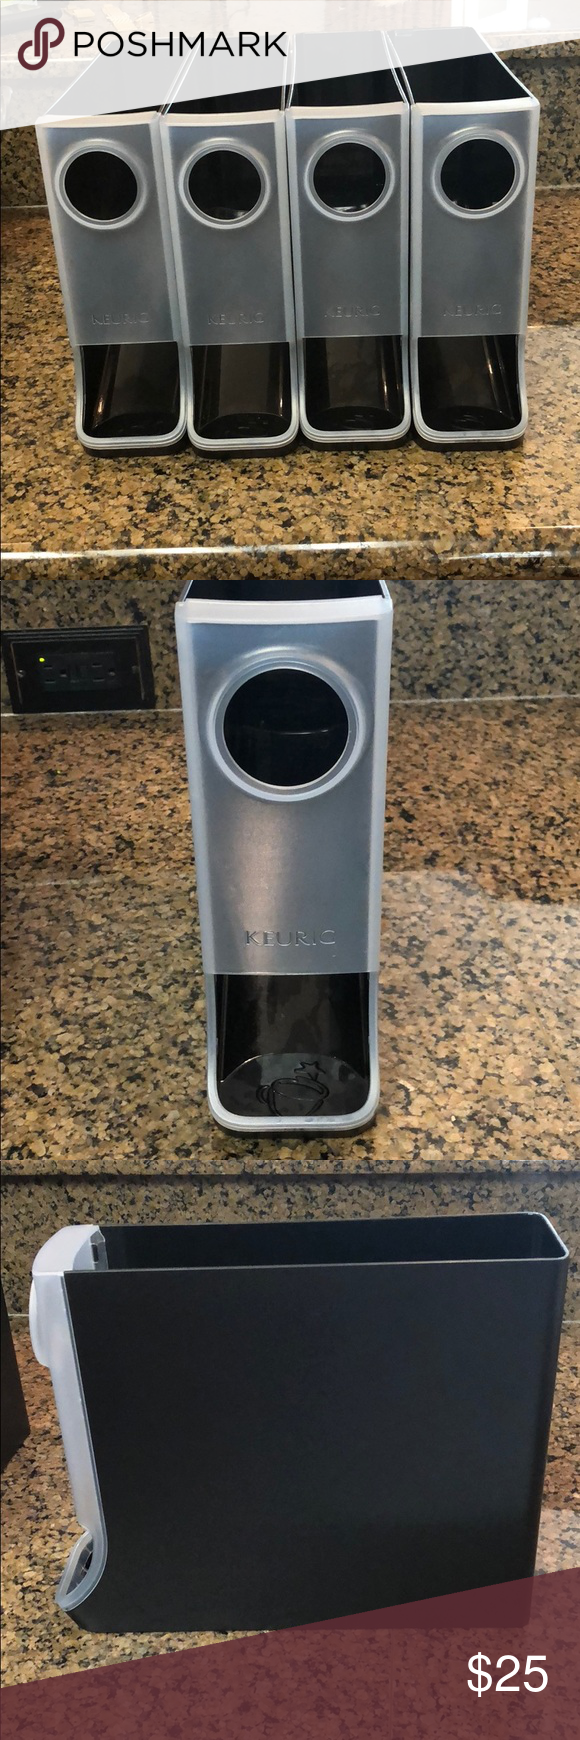 Keurig K Cup Storage Dispenser Keurig K Cup Storage Dispenser. I Have A  Total Of 4 But Selling Them Separately. Theyu0027re All In Perfect Condition  Just Never ...